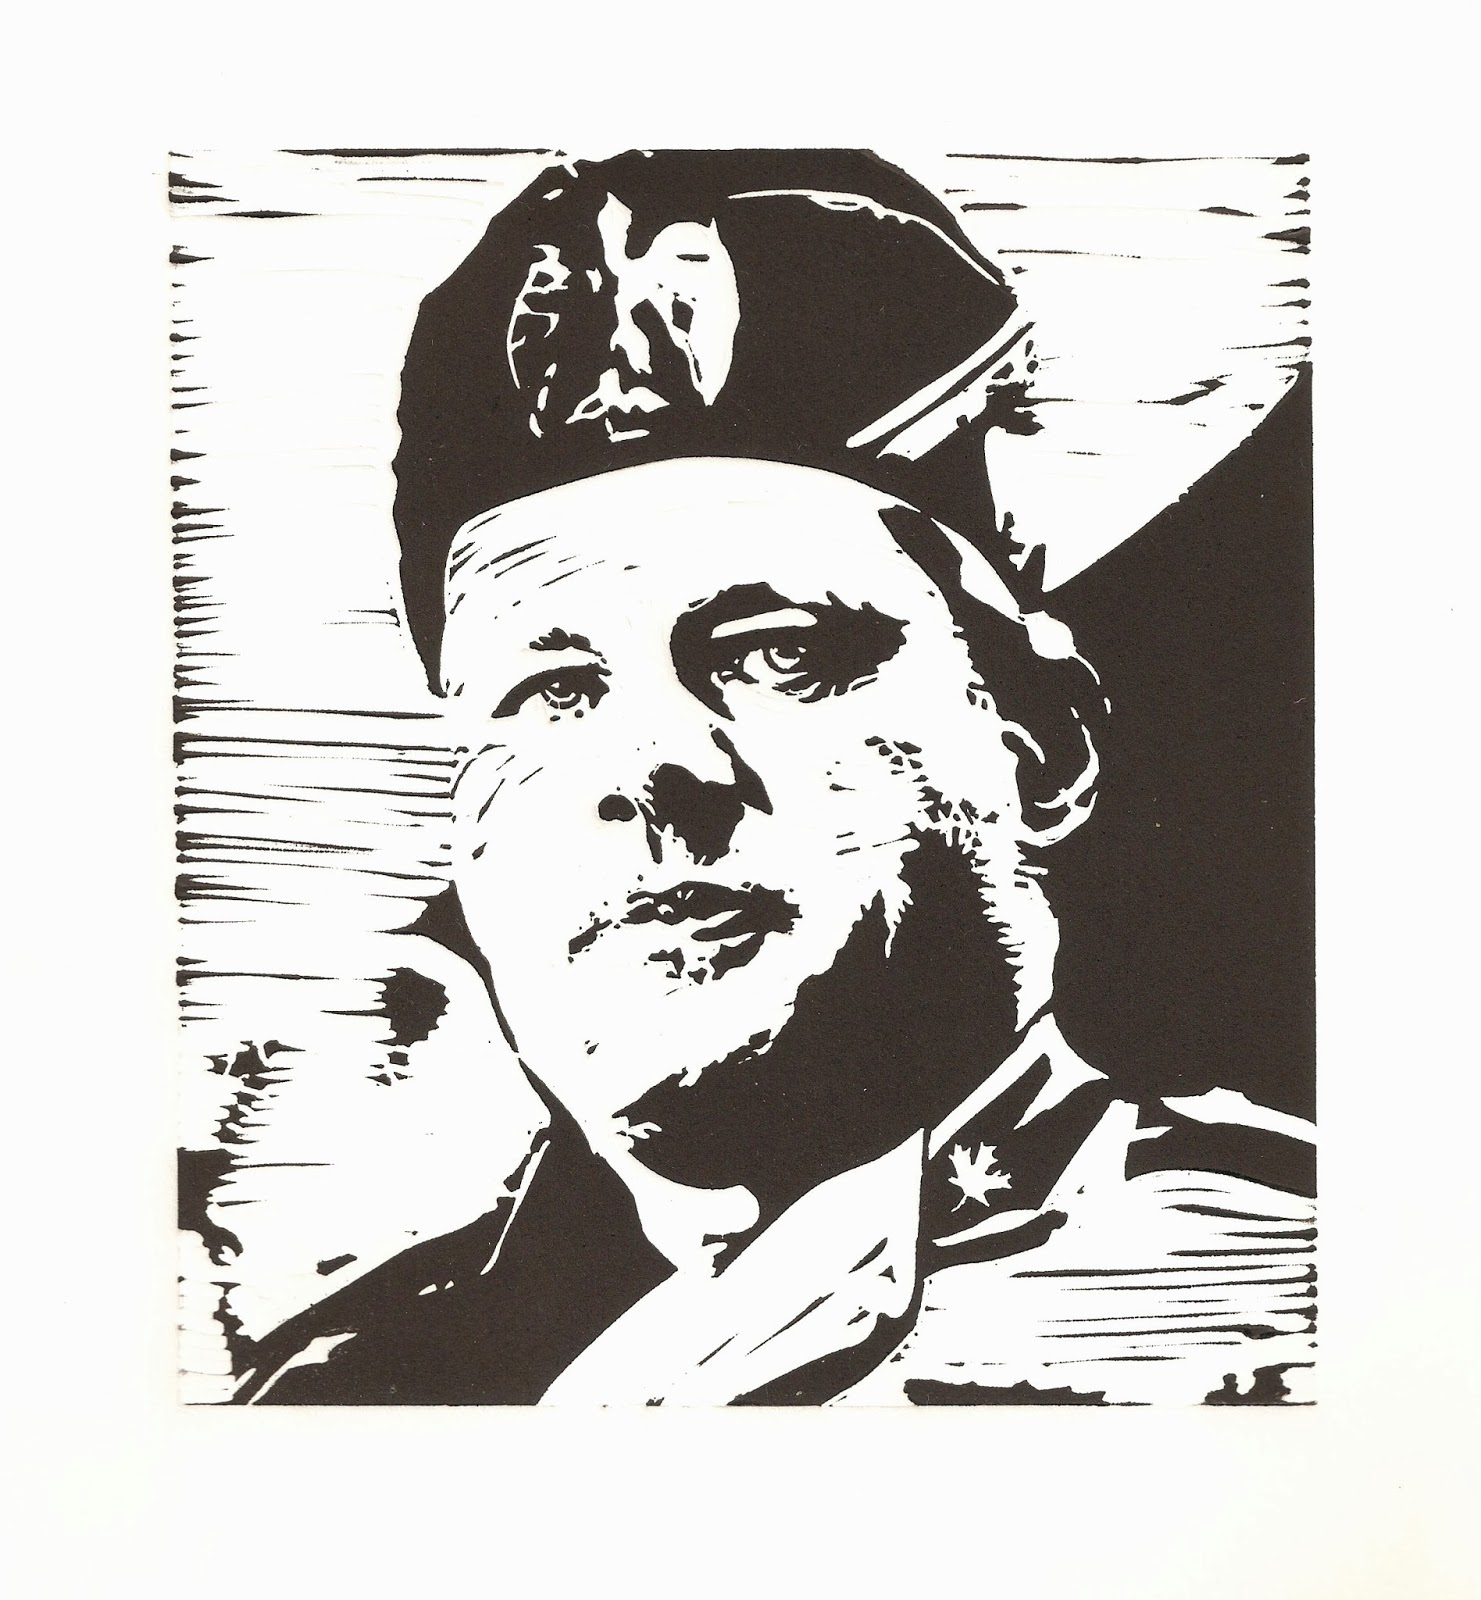 """'Crime Minister Harpolini' Peter Graham, linocut on paper, 6"""" x 6.5"""", edition of 25, 2013"""